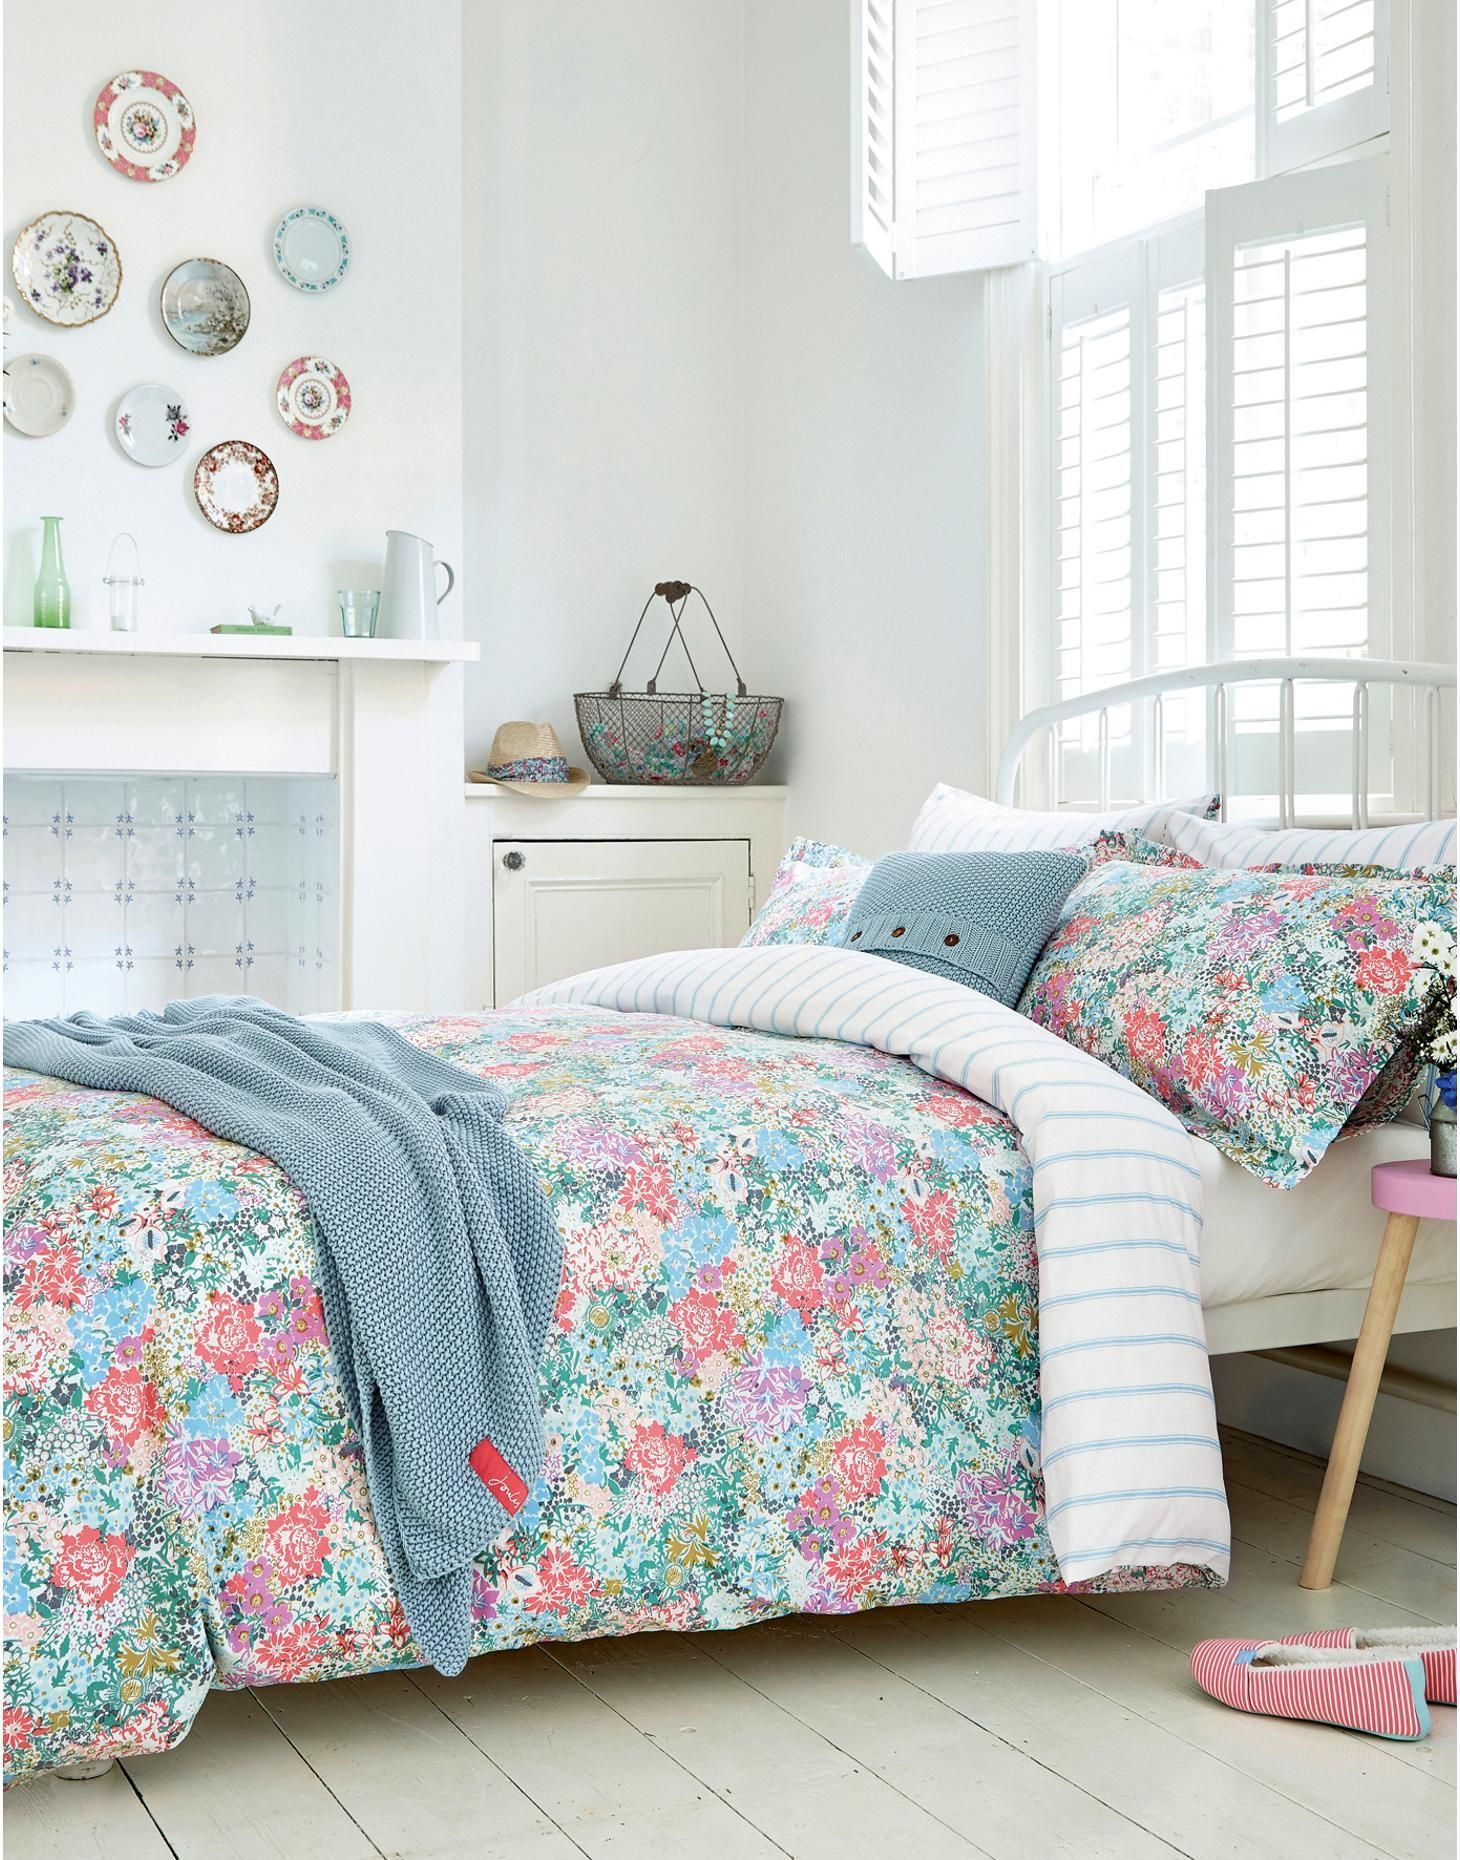 DUVETCHELSEA Chelsea Floral Duvet Cover: This would go perfectly ...